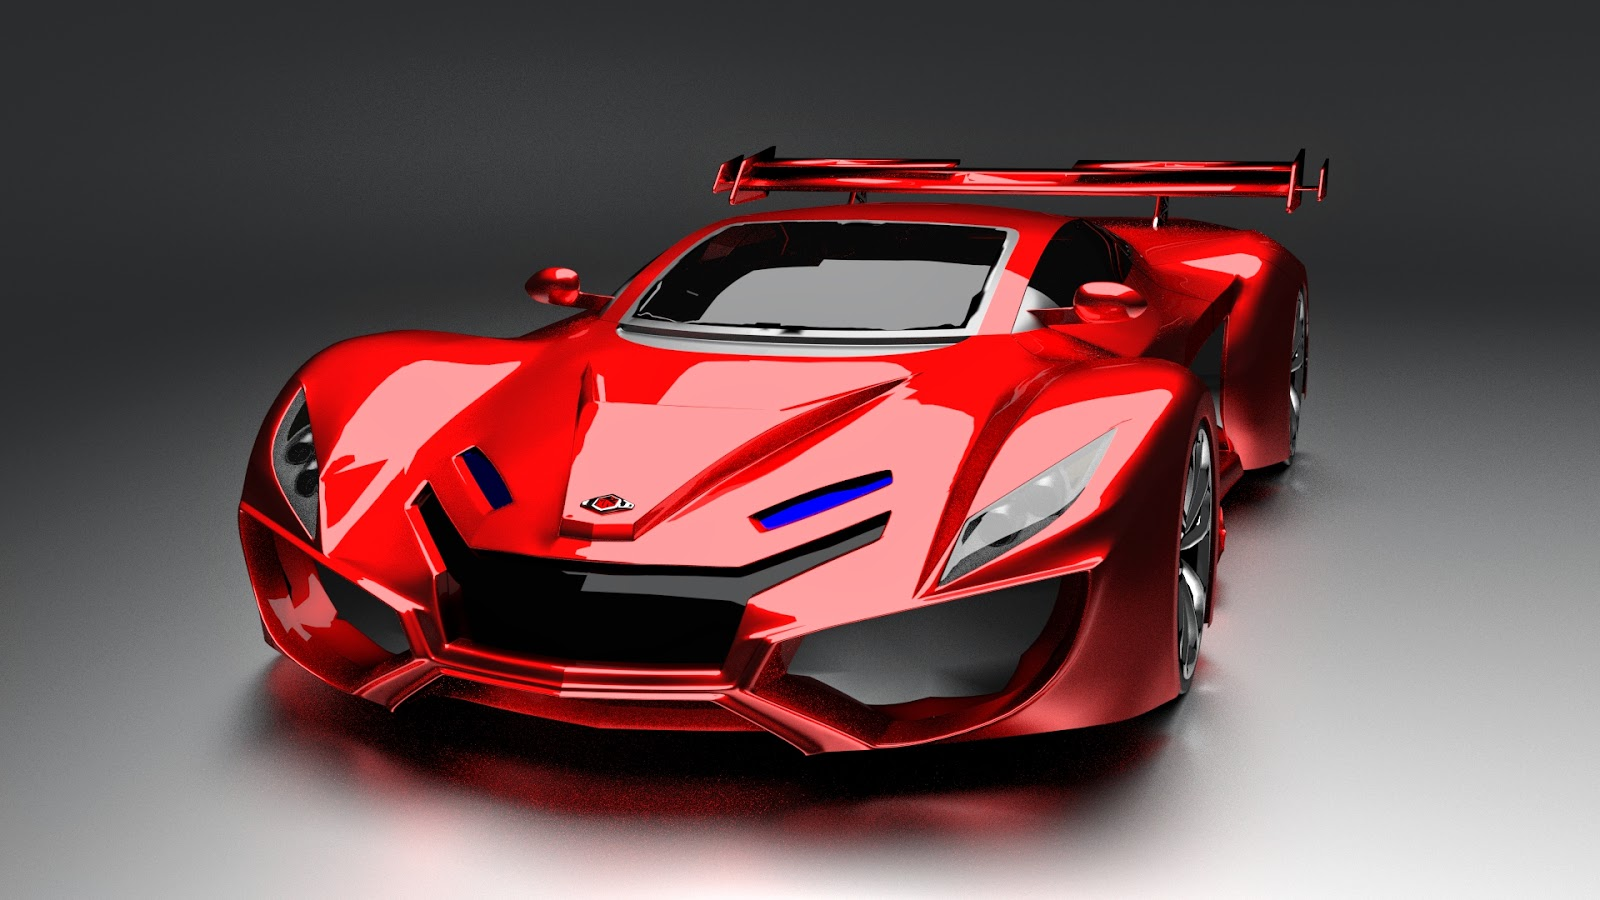 Car Charitable Donation The Beauty That Sports Cars Possess - Powerful sports cars